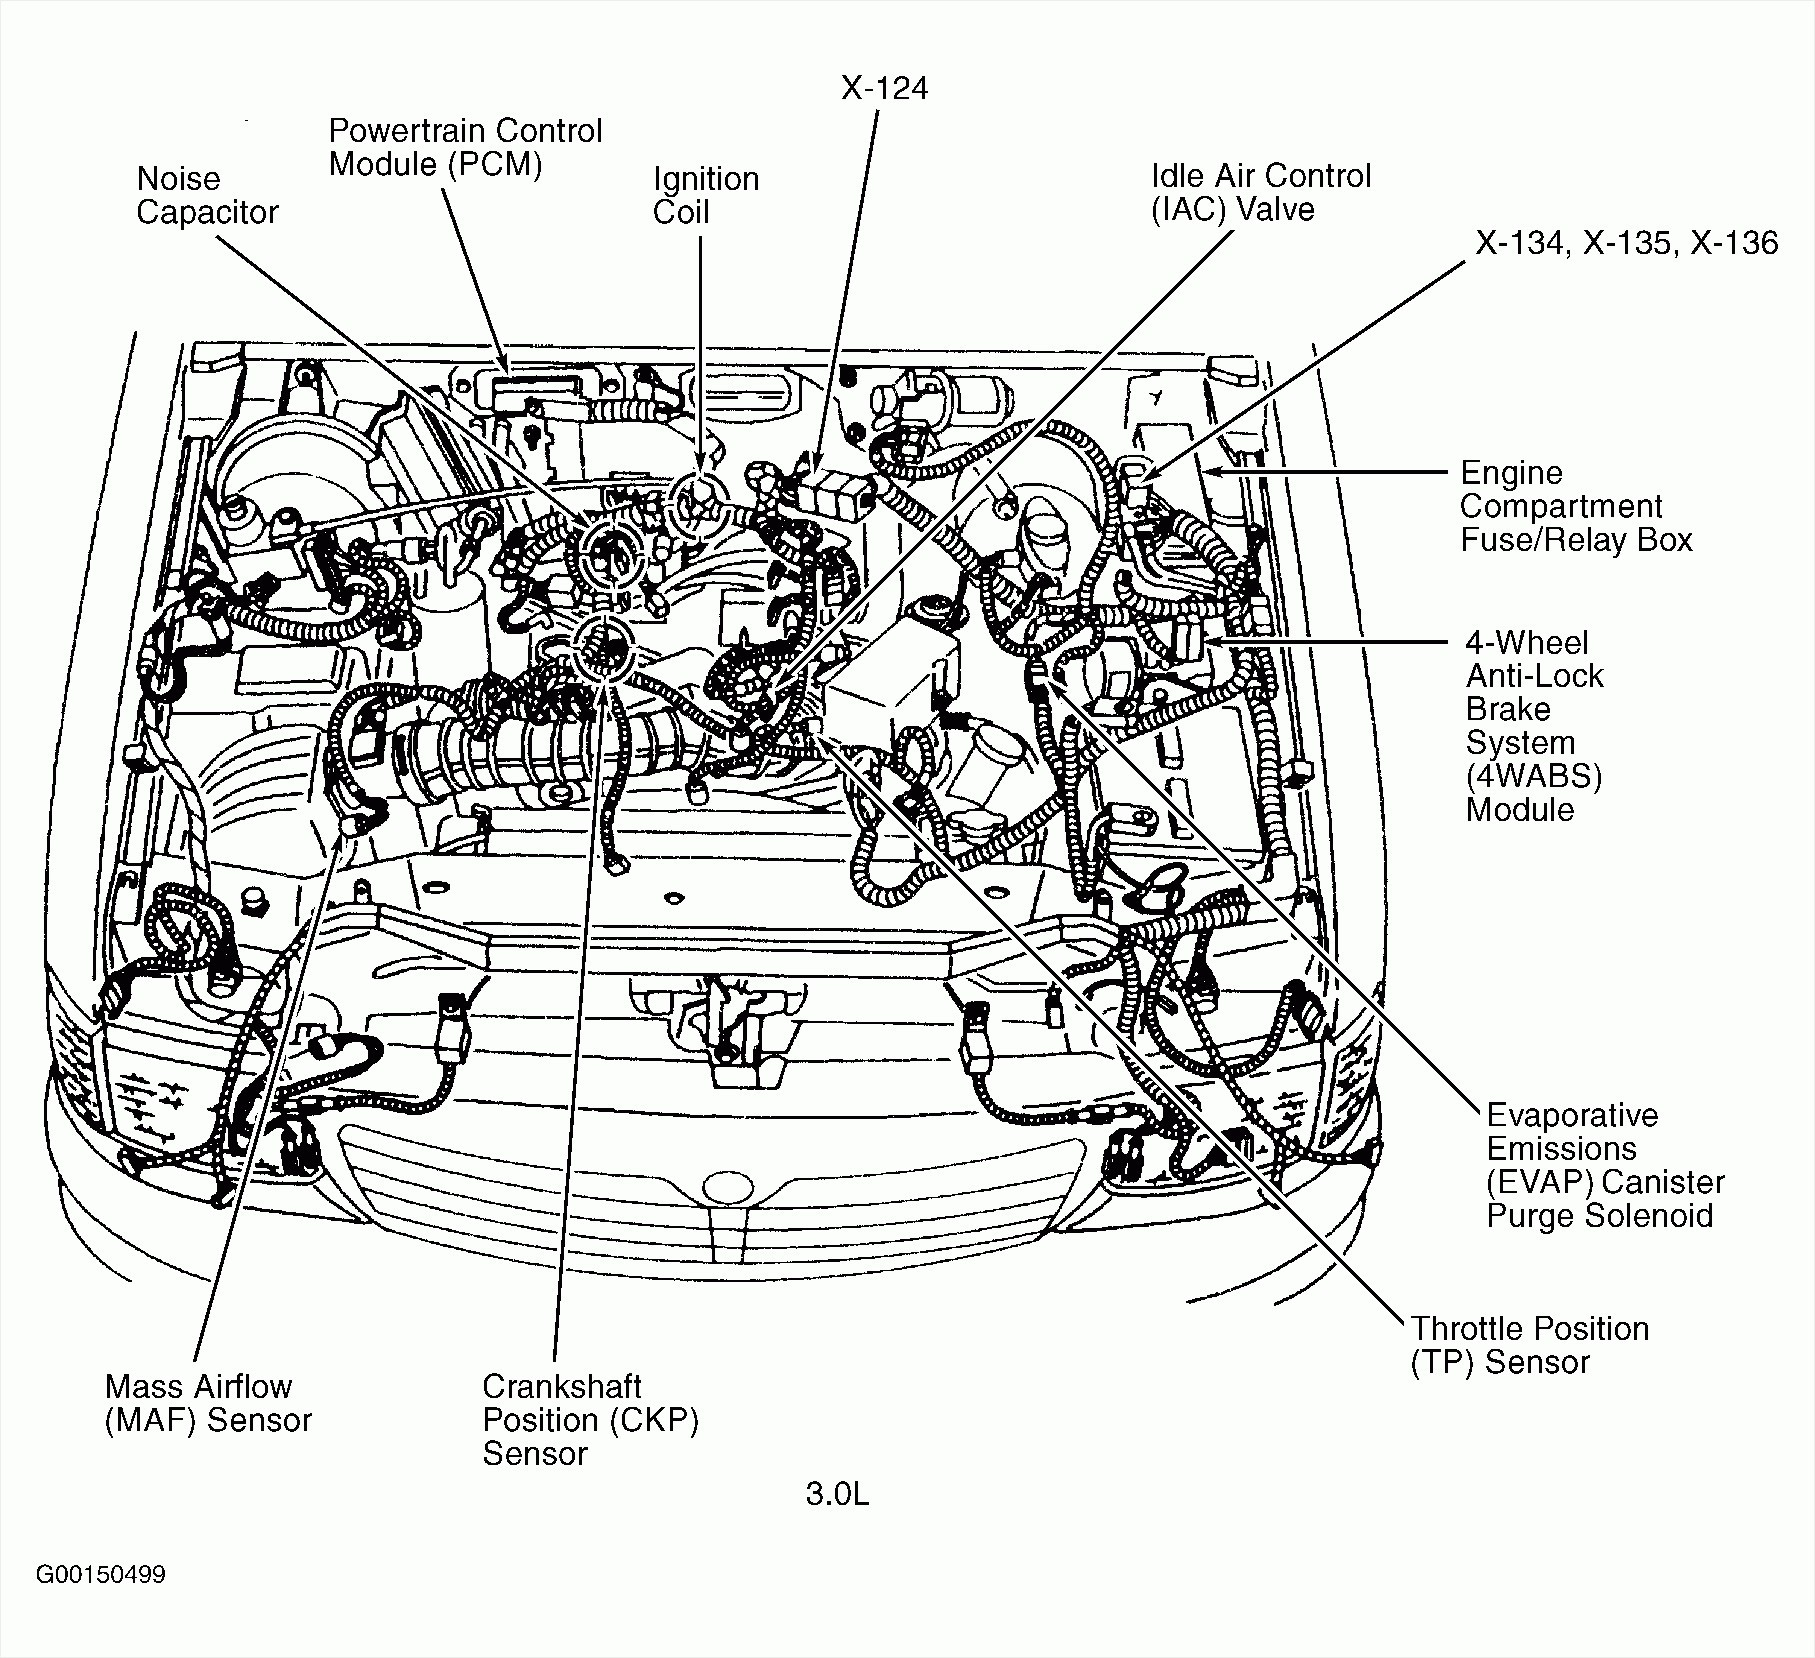 1997 mazda mpv engine diagram reveolution of wiring diagram u2022 rh  jivehype co 2003 mazda mpv